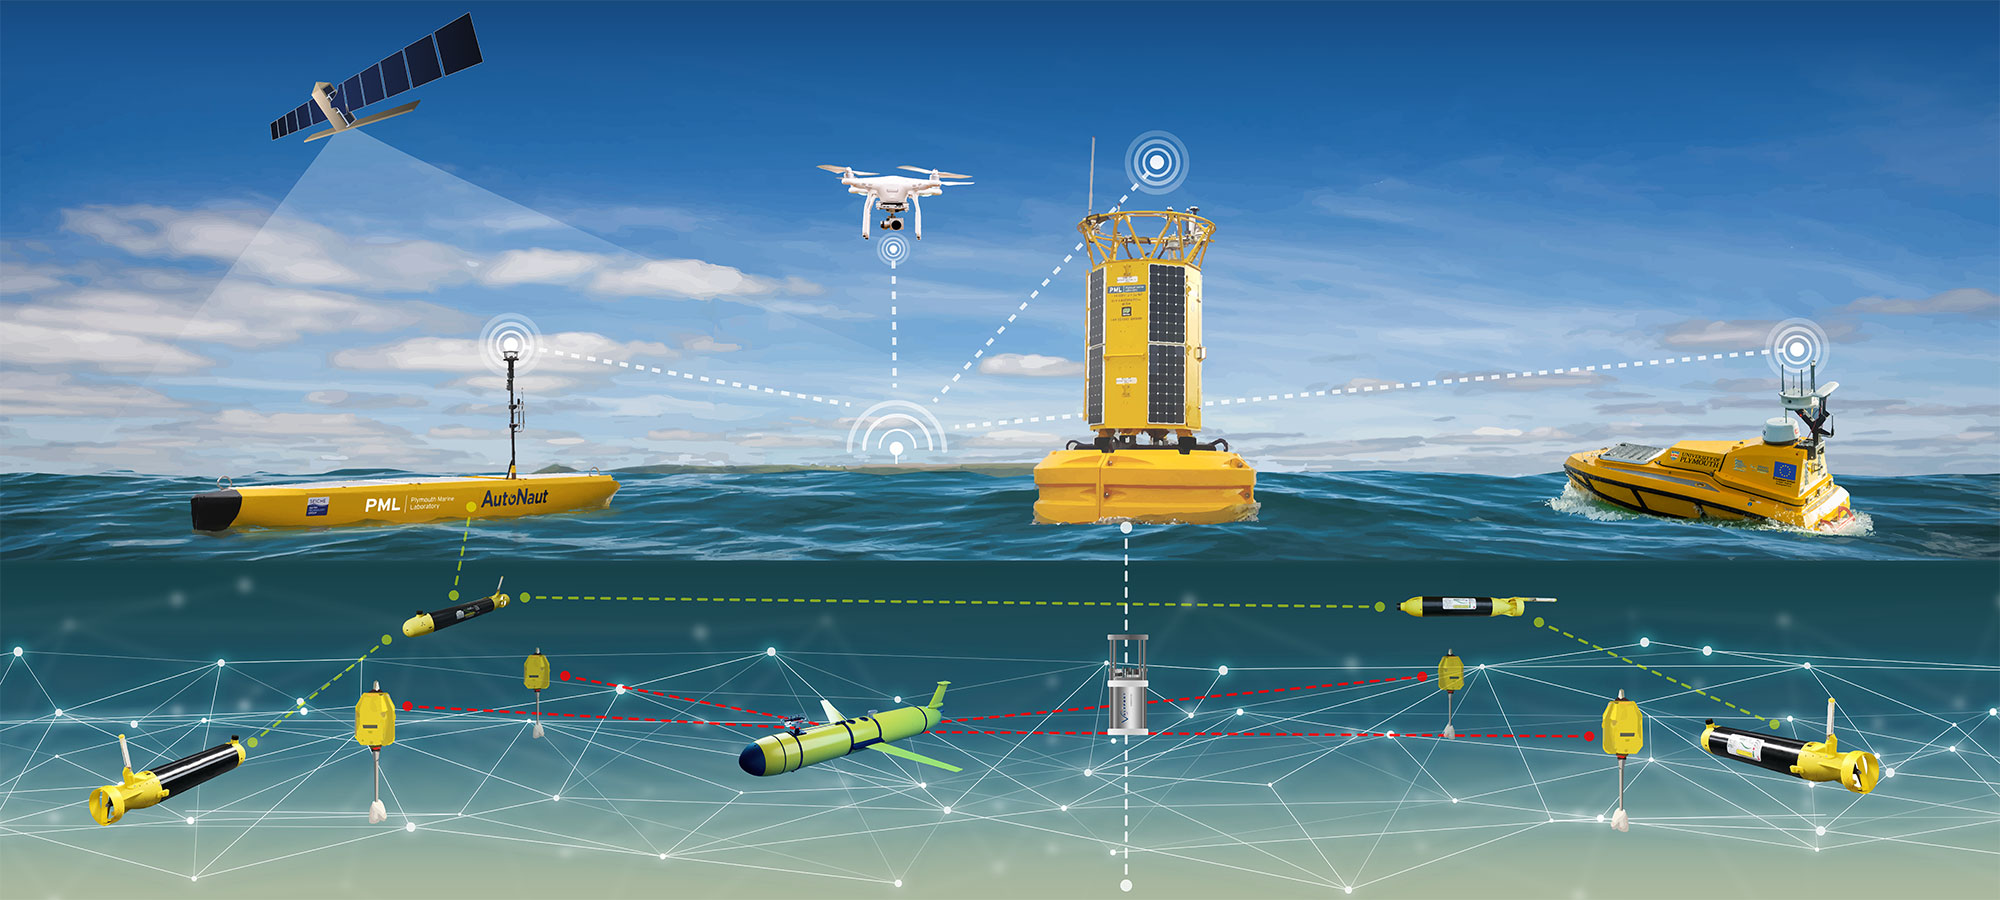 Illustration showing above and below water with various elements of smart sound technology - Including drone, surface vessels, underwater gliders with an underwater plexus showing modelling of the sea bed